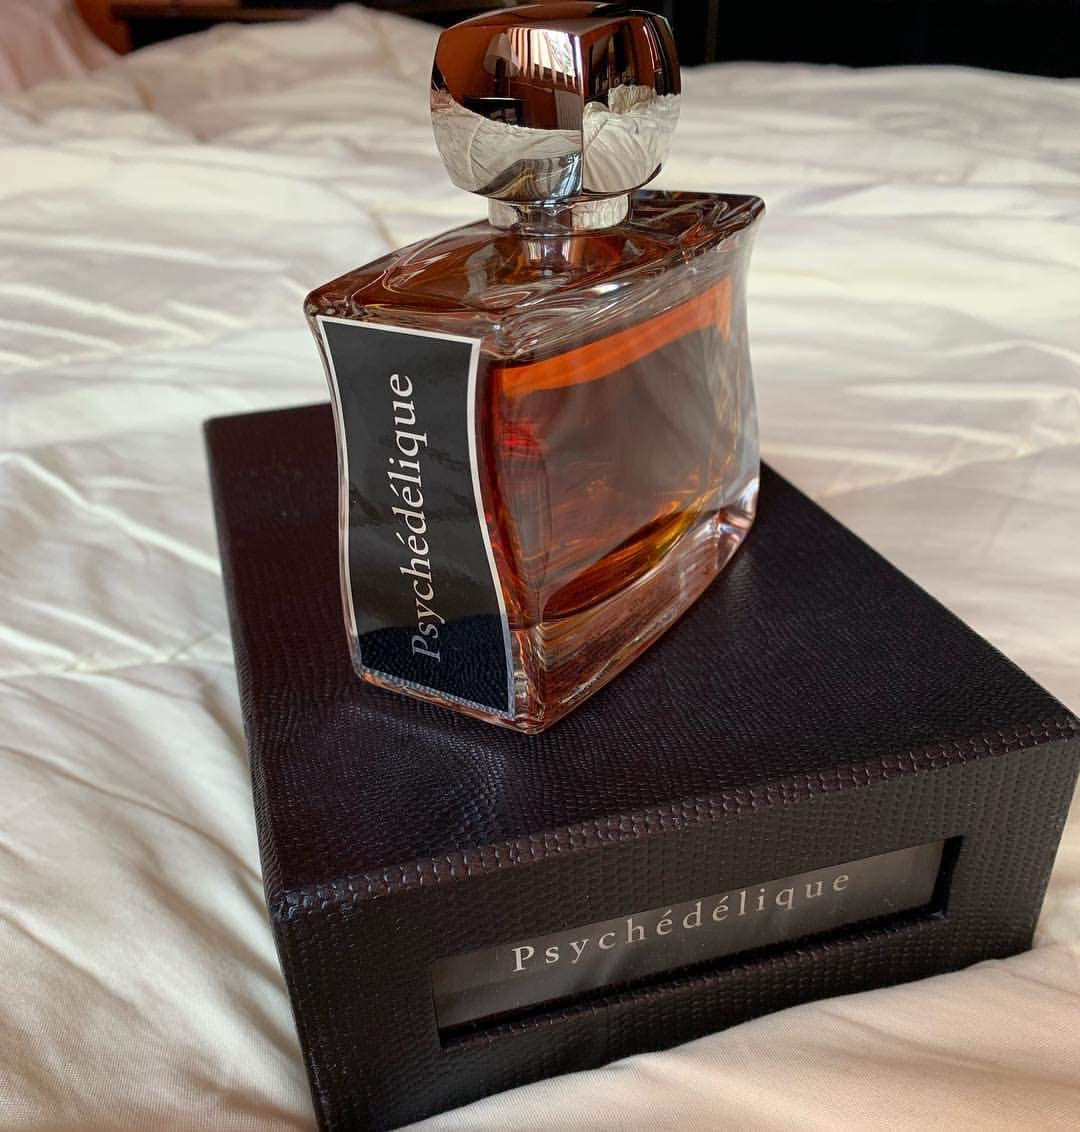 Luxury Authentic JOVOY Psychedelique EDP 50ml Made in France + 3 Niche Samples / 本物の贅沢 喜び サイケデリック EDP 50mlフランス製+ 3ニッチサンプル